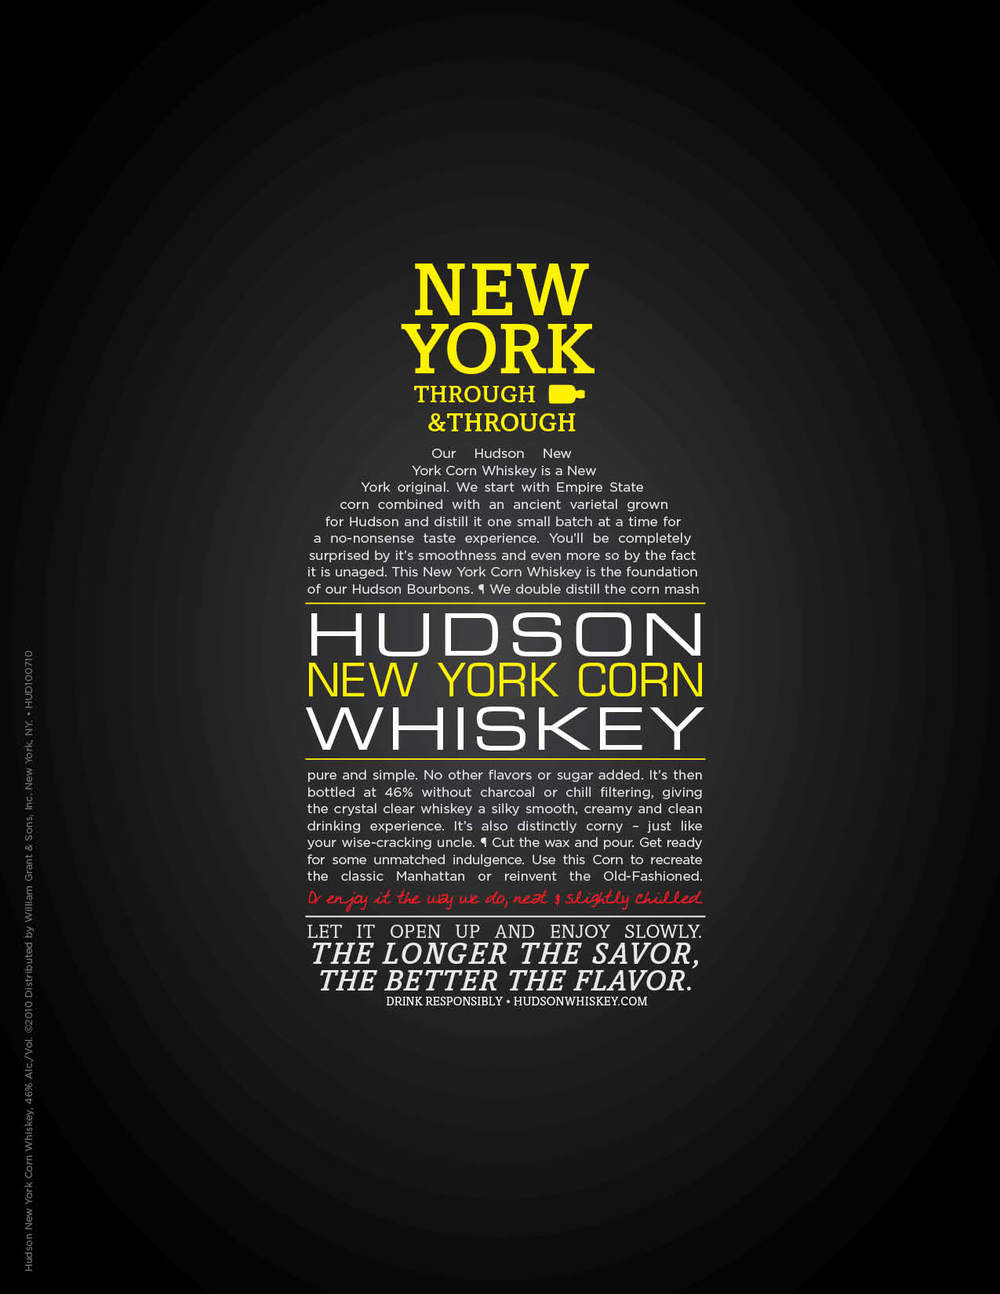 hudson-bottleicon-ads3.jpg